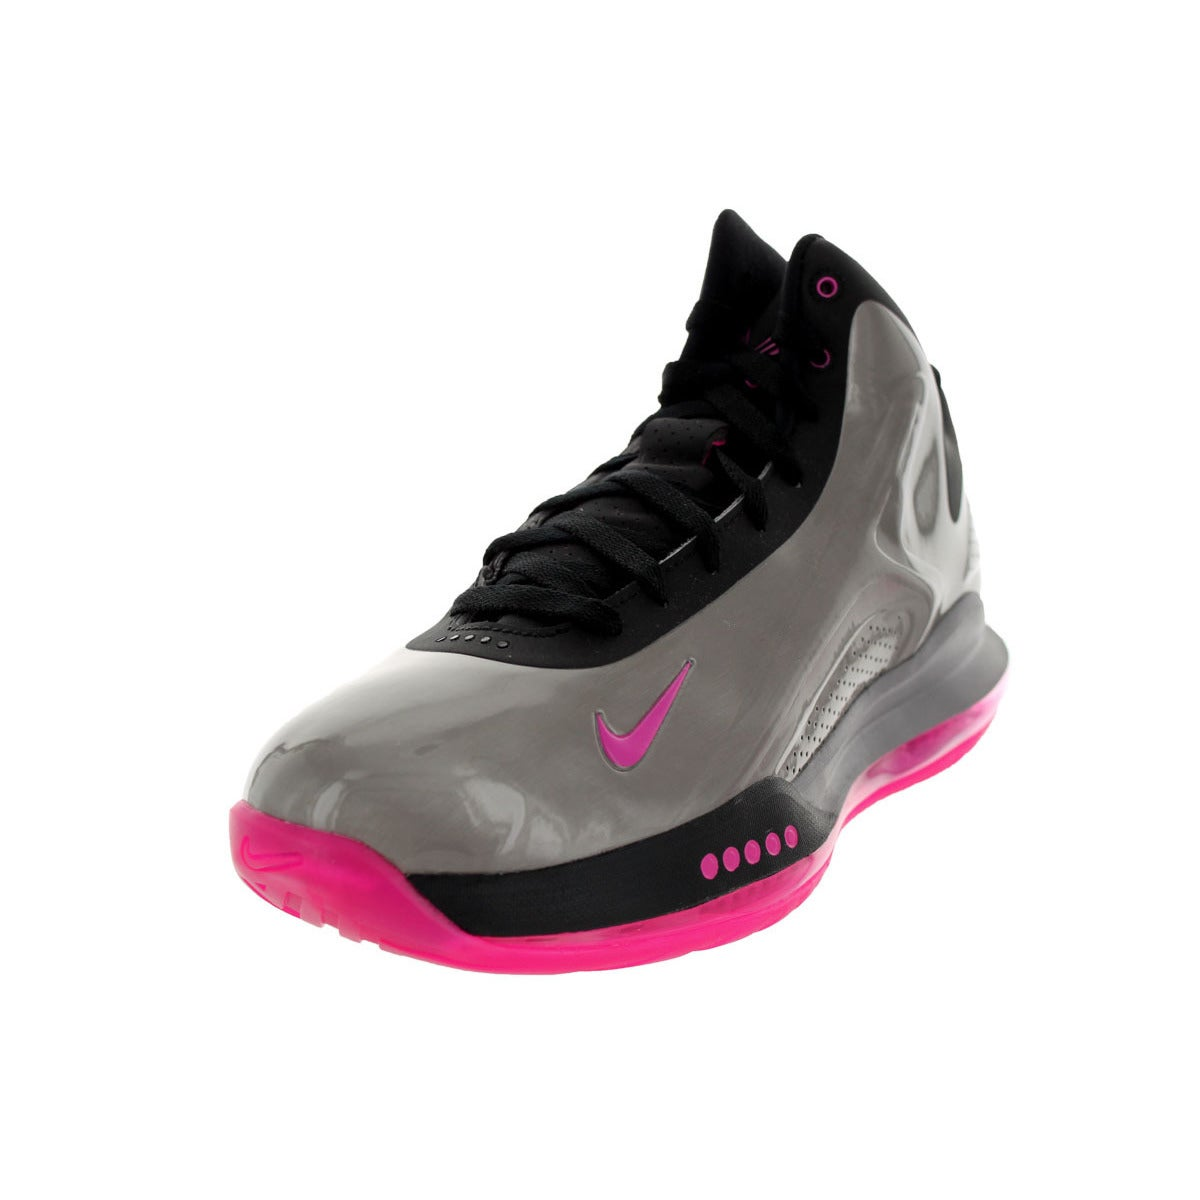 Nike Men's Hyperflight Max Pewter/Pink Synthetic Basketball Red